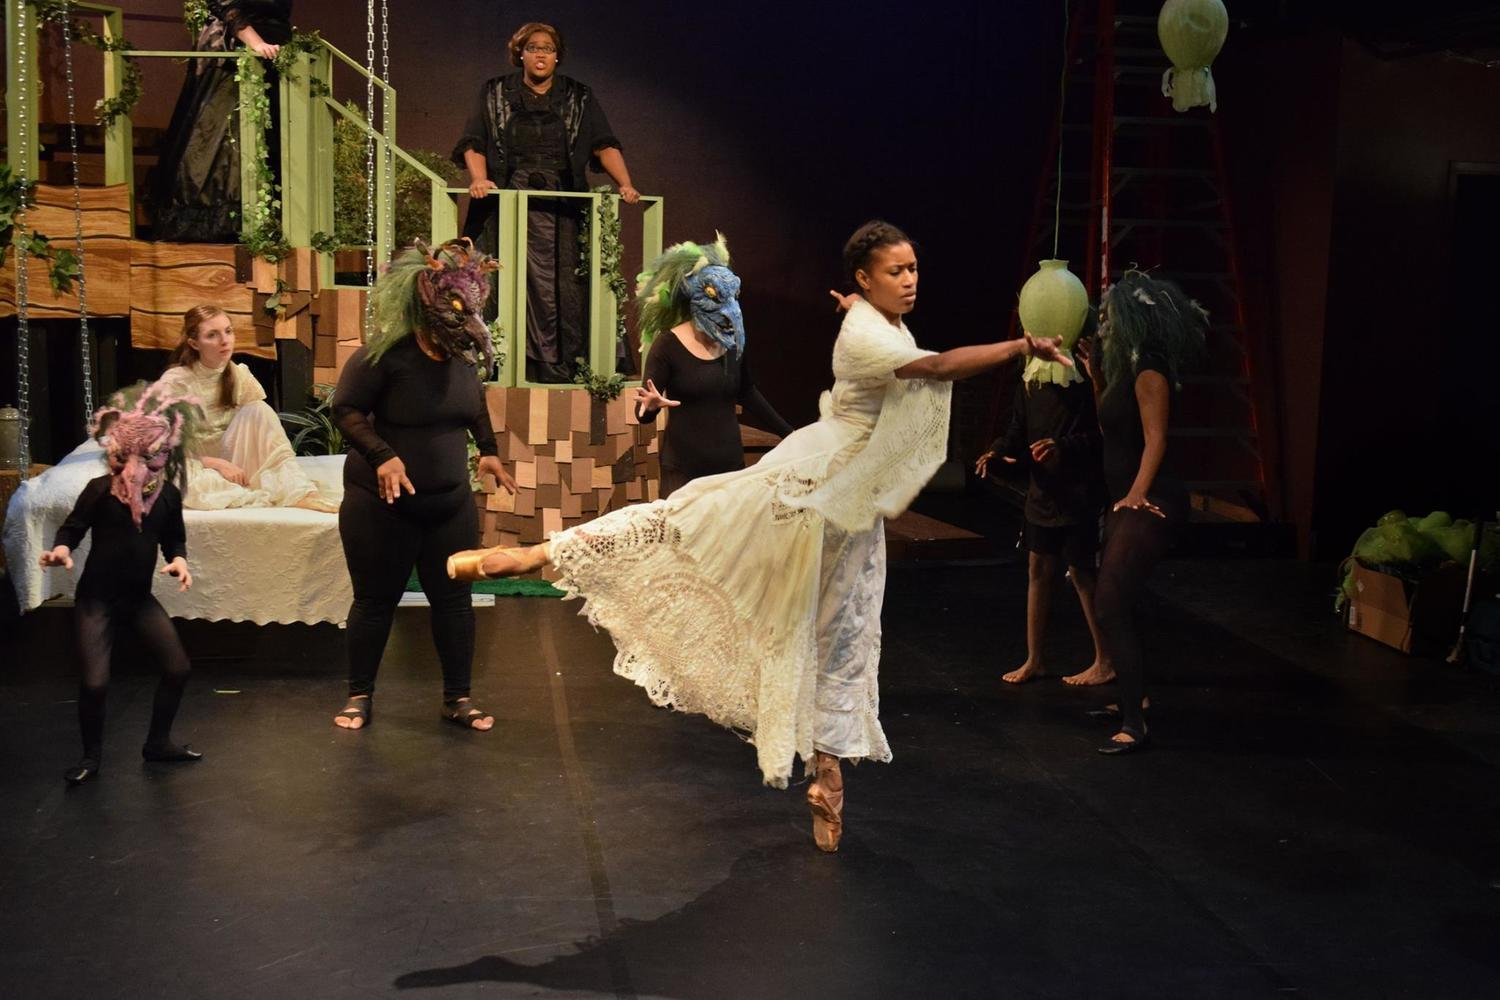 BWW Review: Women's Theatre Festival's GOBLIN MARKET Makes for a Visual Feast